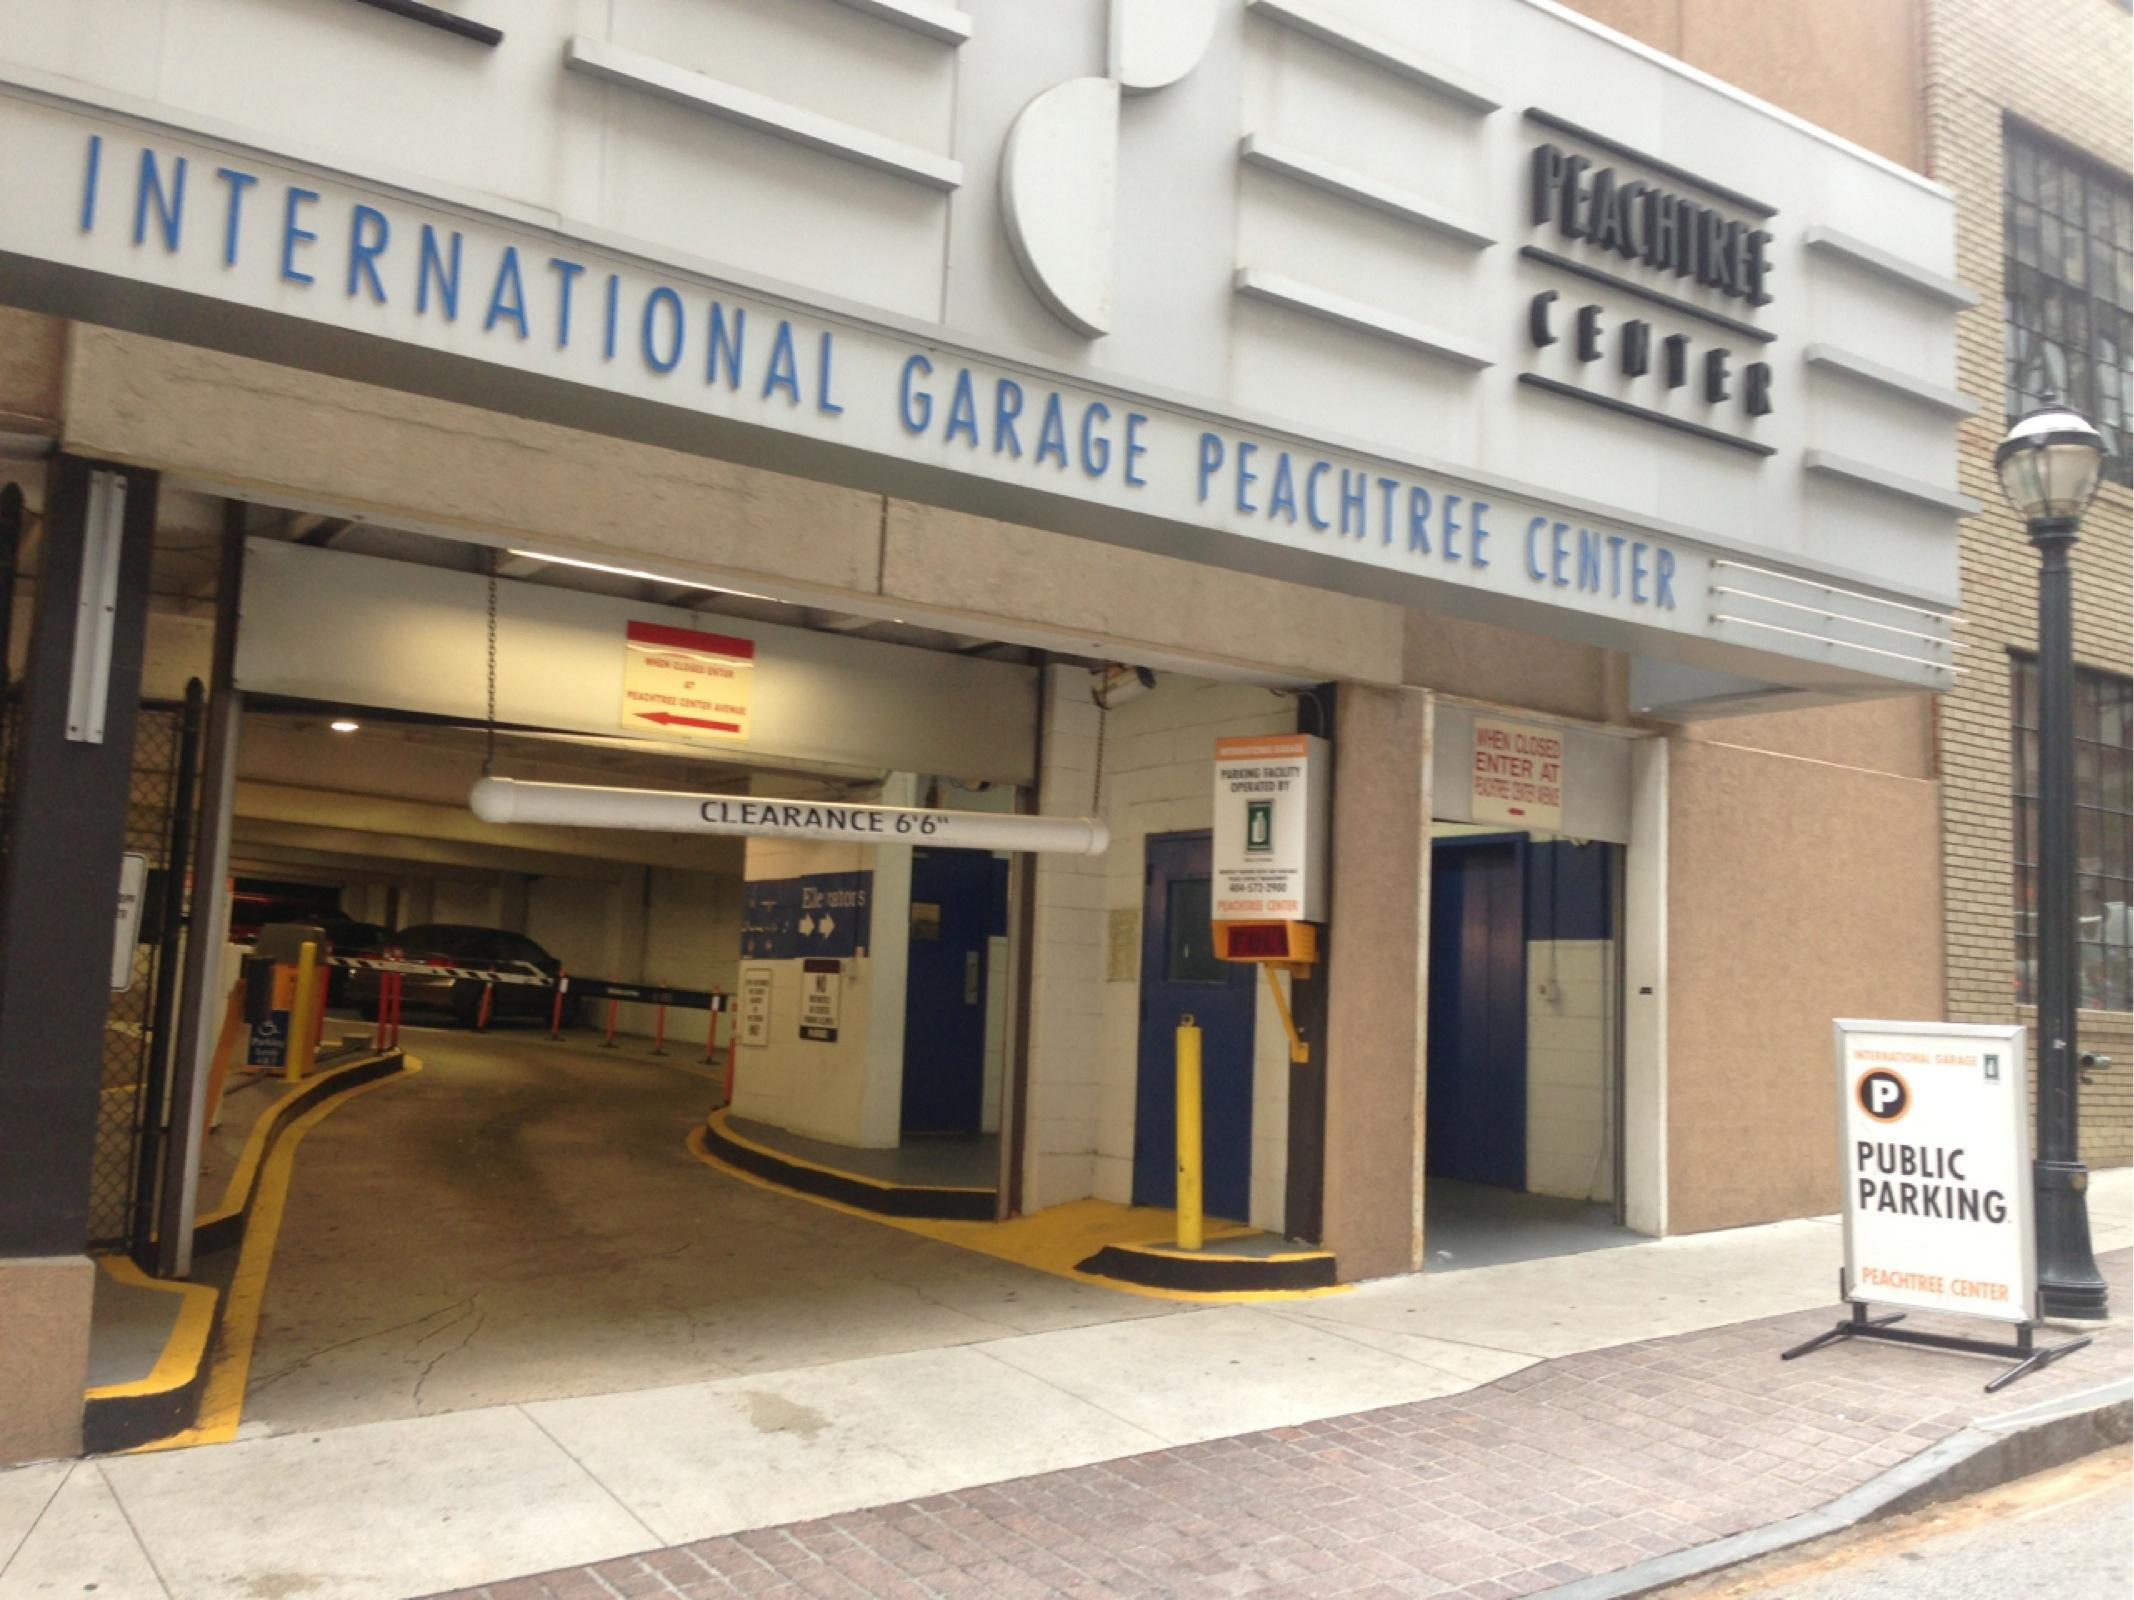 International garage peachtree center parking in atlanta for The peachtree